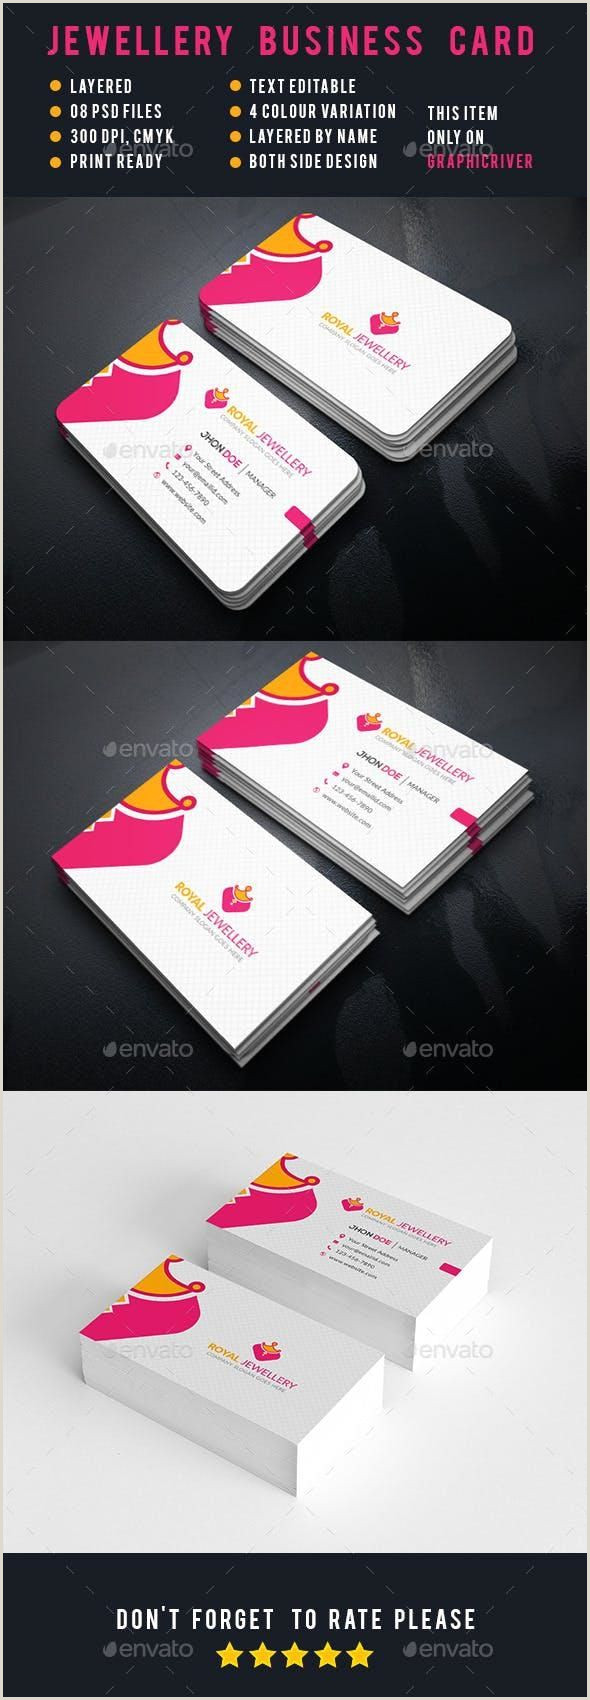 What Is The Best Business Cards Design For Jewelry Jewellery Corporate Business Cards For $5 Graphic